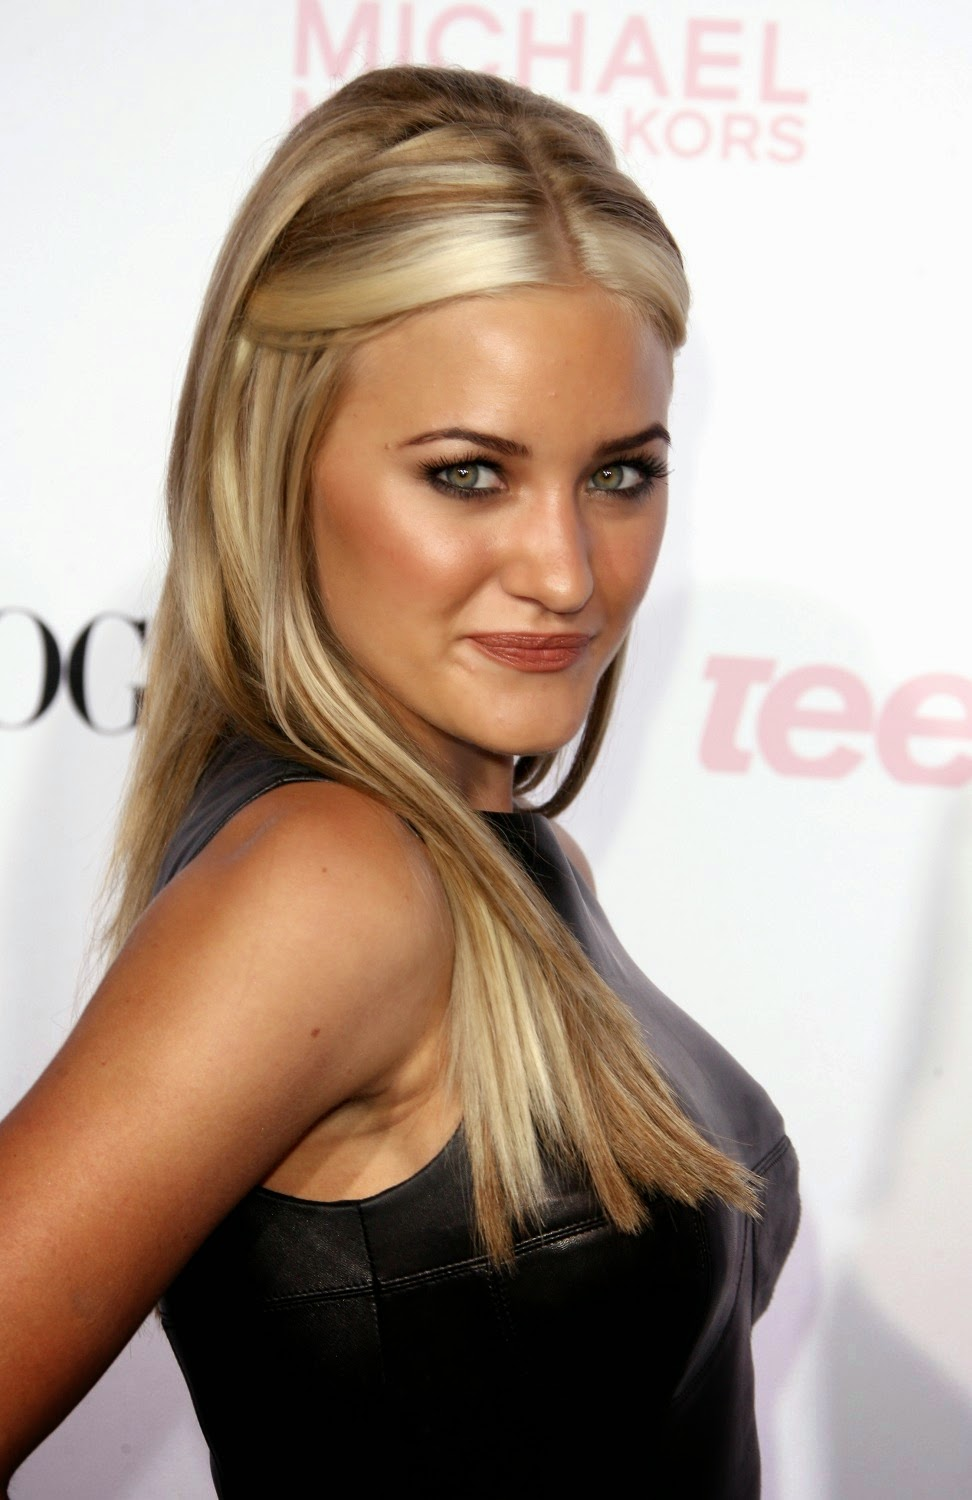 Selfie AJ Michalka naked (57 foto and video), Ass, Bikini, Instagram, underwear 2006